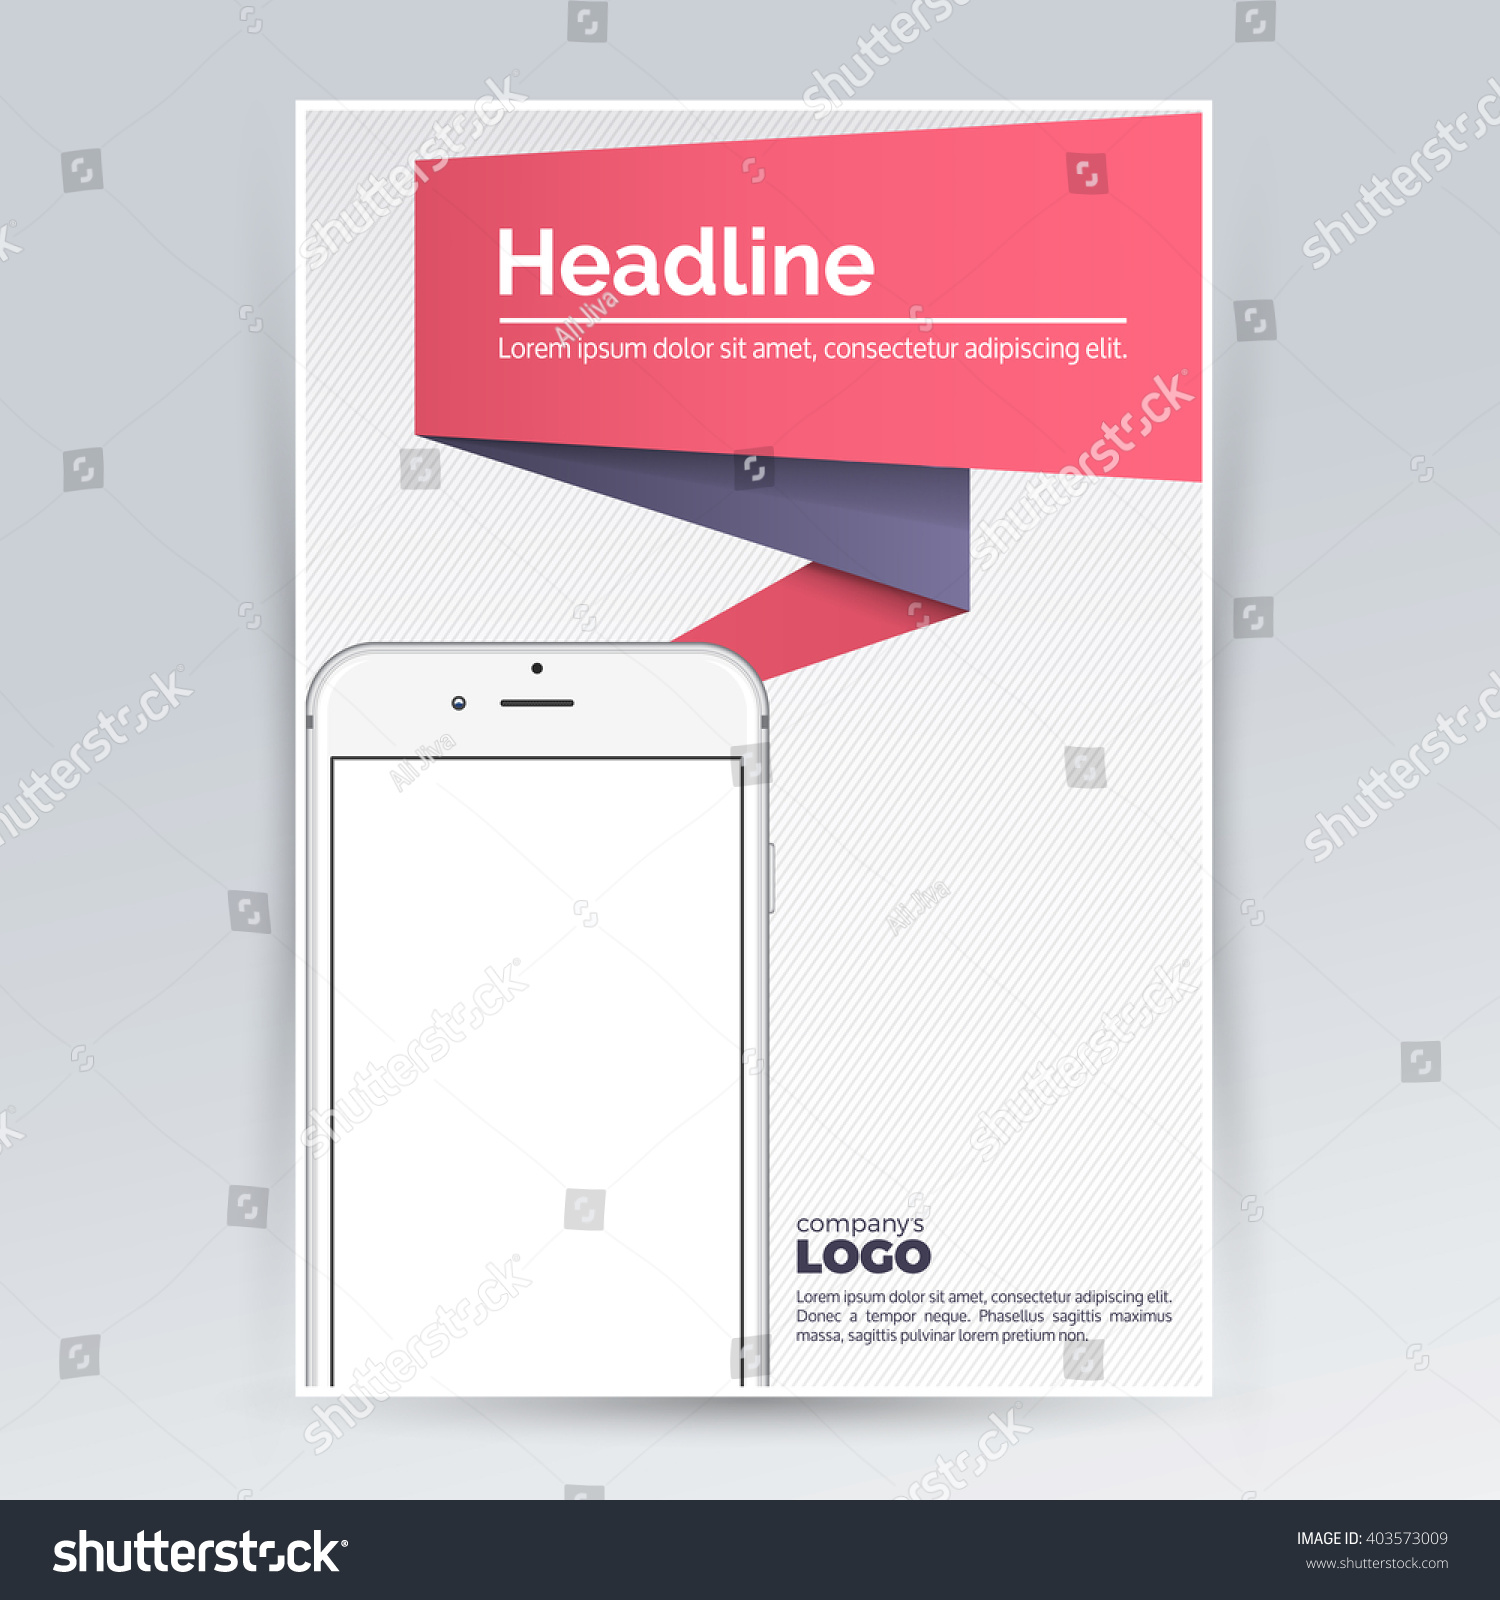 brochure design template smartphone advertising creative stock brochure design template smartphone for advertising creative leaflet pamphlet flyer cover for